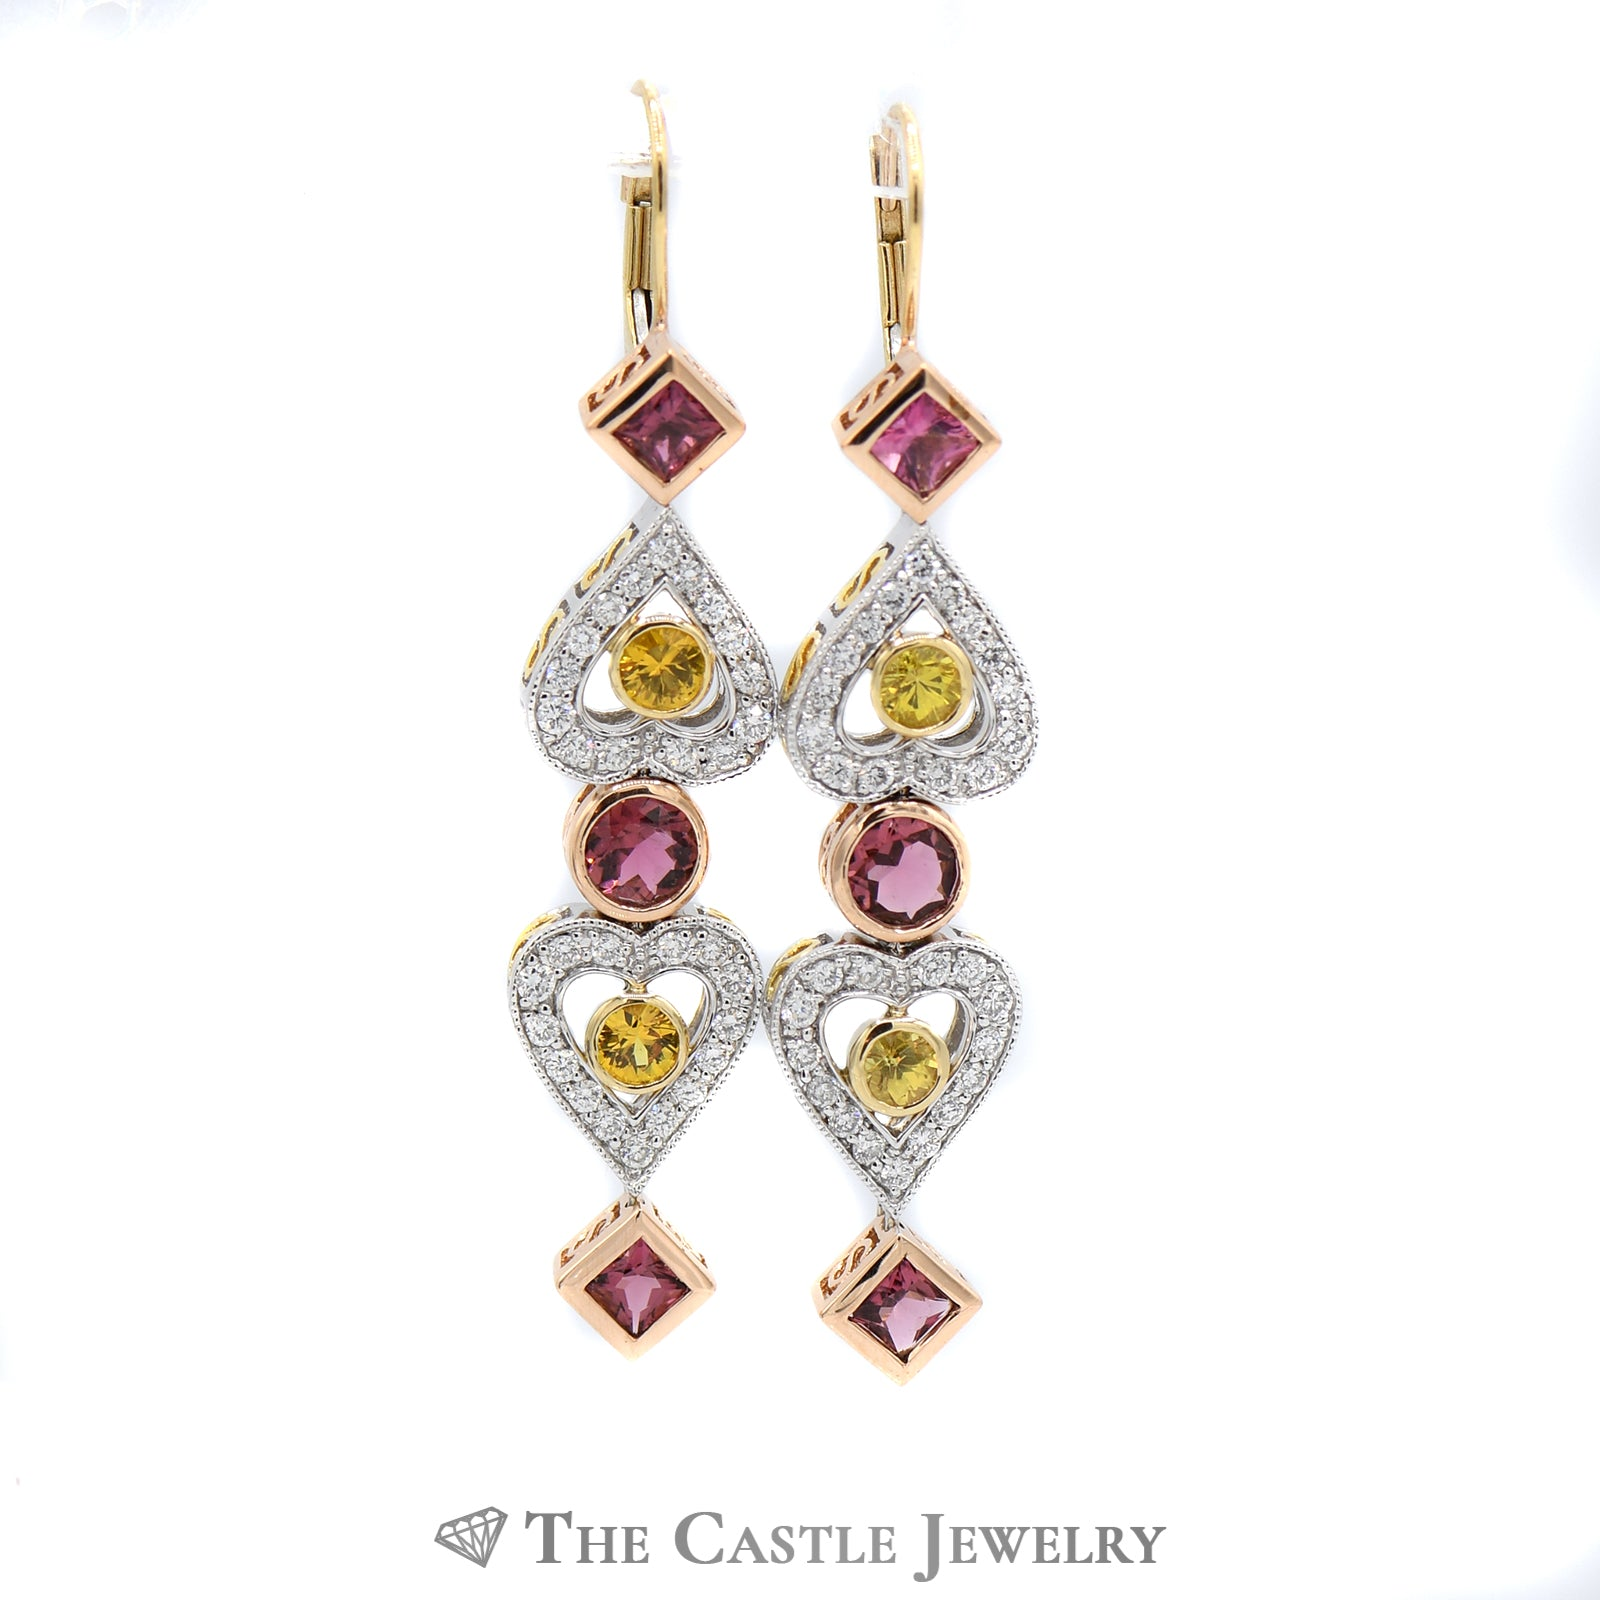 Demeter Dangling Diamond, Pink Tourmaline, & Yellow Sapphire Earrings